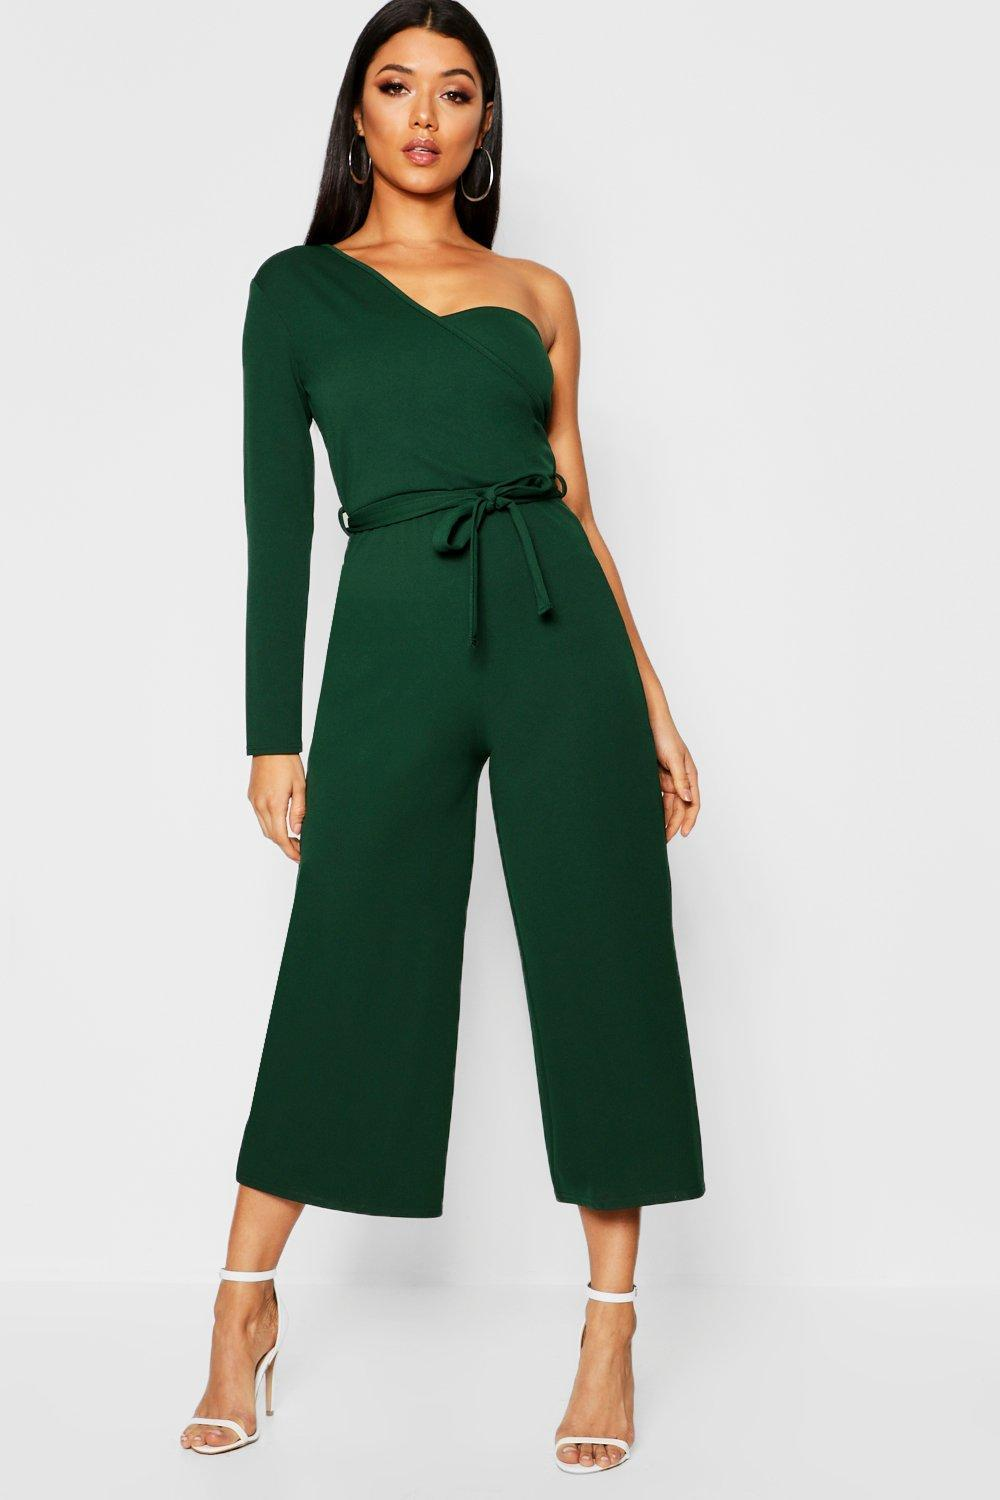 ecd7cace1c9d Boohoo One Sleeve Bustier Style Jumpsuit in Green - Lyst